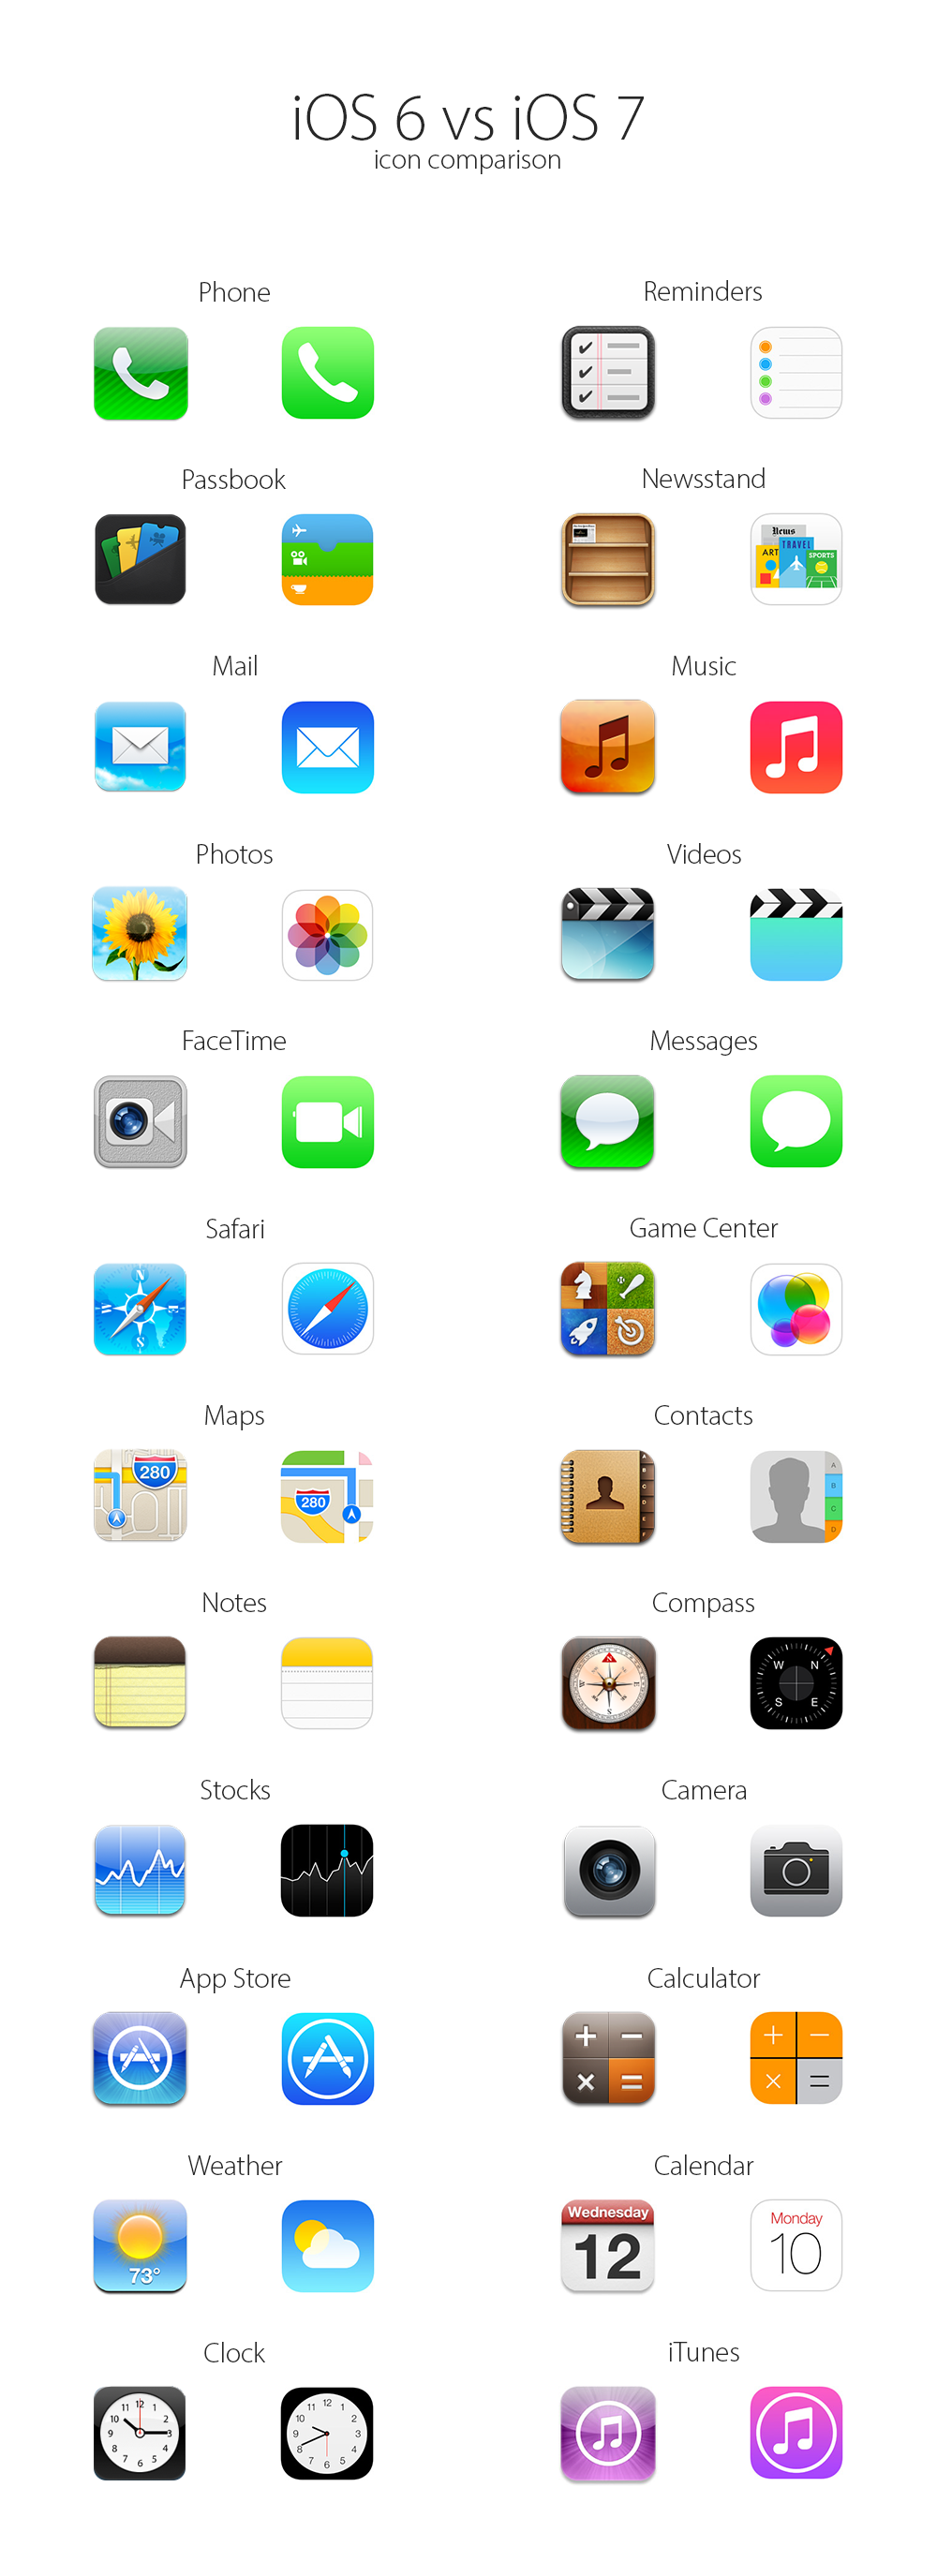 IOS 6 vs iOS 7 icons